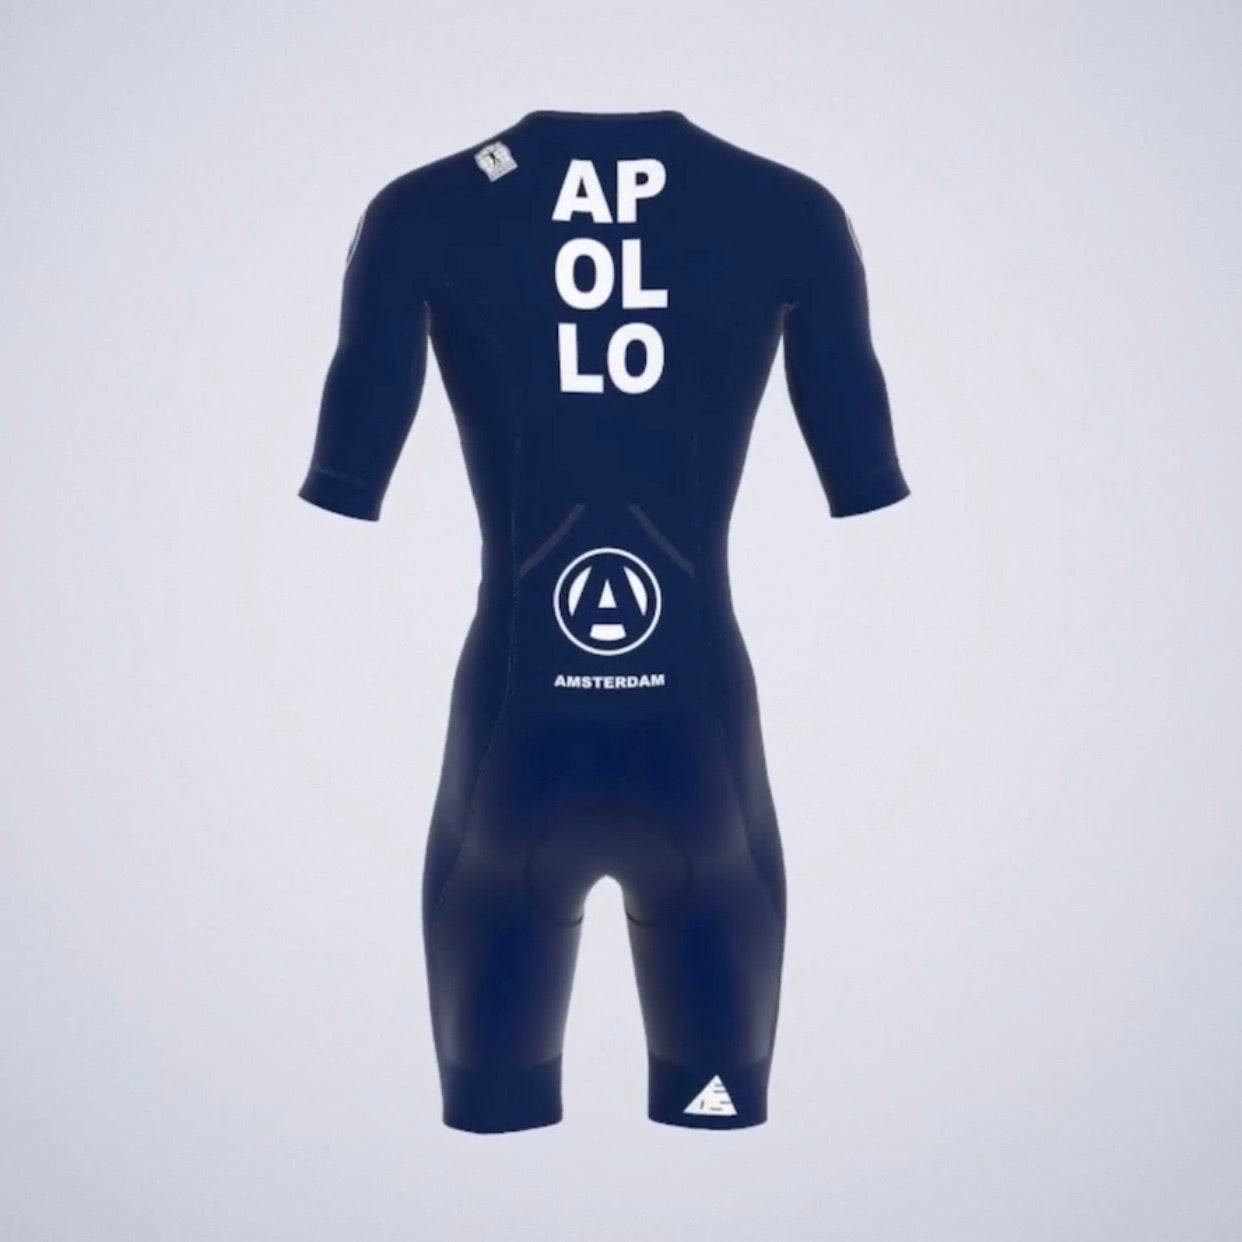 Apollo x Bioracer IRONMAN 2021 Season Triathlon Suit